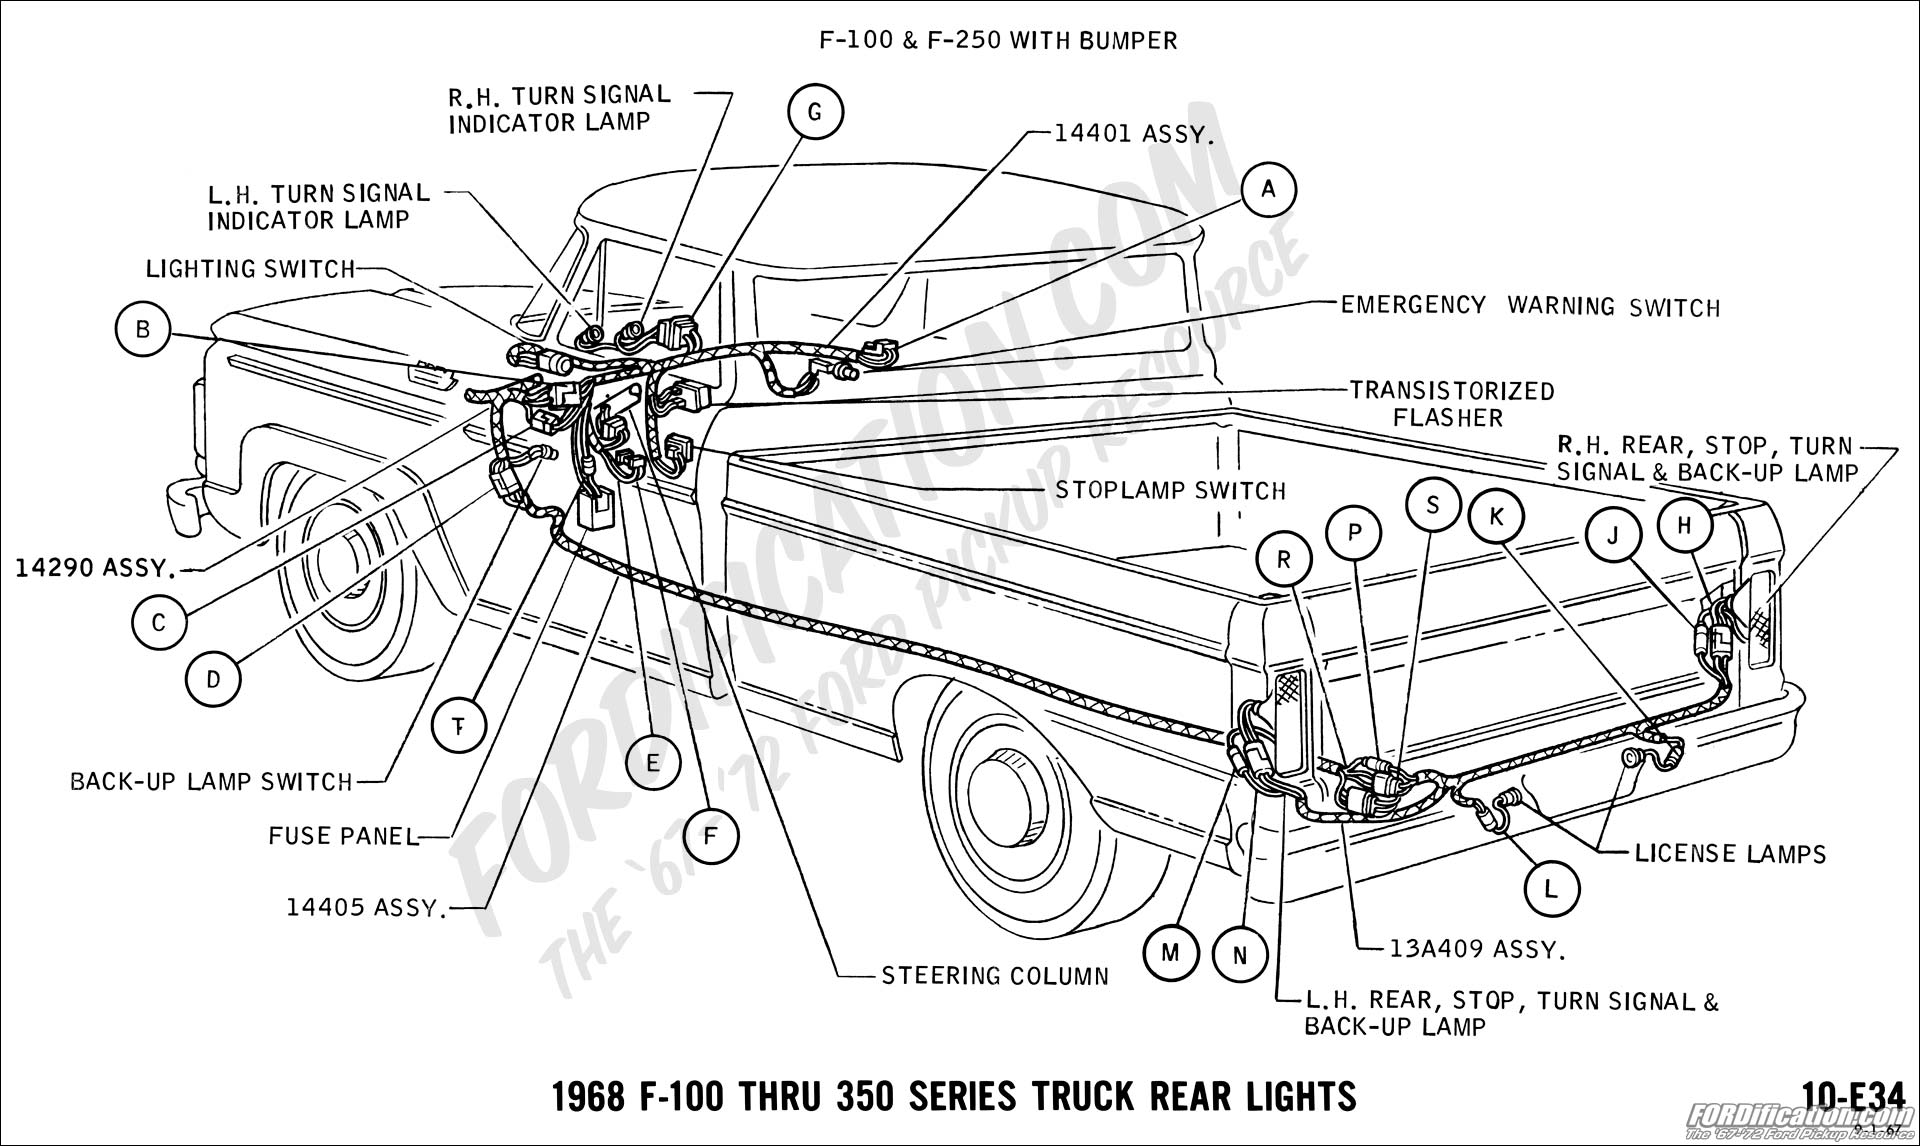 1968 F-100 thru F-350 rear lights ...